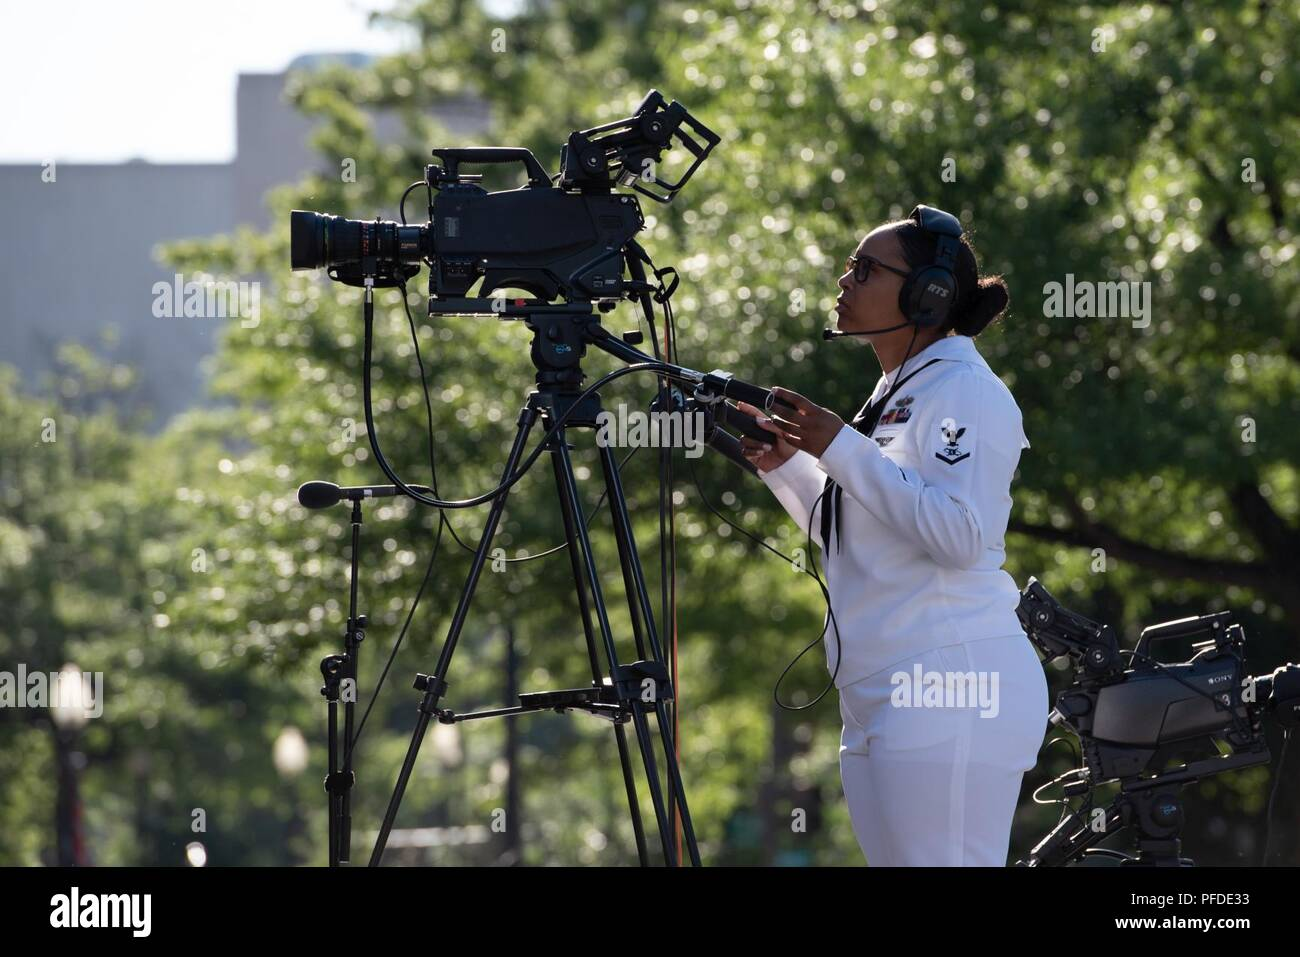 WASHINGTON (June 5, 2018) Mass Communications Specalist 3rd Class Briana Bowens videotapes the commemoration of the 76th anniversary of the Battle of Midway at the U.S. Navy Memorial in Washington, D.C. The Battle of Midway stands as one of the U.S. Navy's most historically significant naval battles. Fought on the high seas of the Pacific more than half a century ago, this battle altered the course of the war in the Pacific and thereby shaped the outcome of world events. - Stock Image